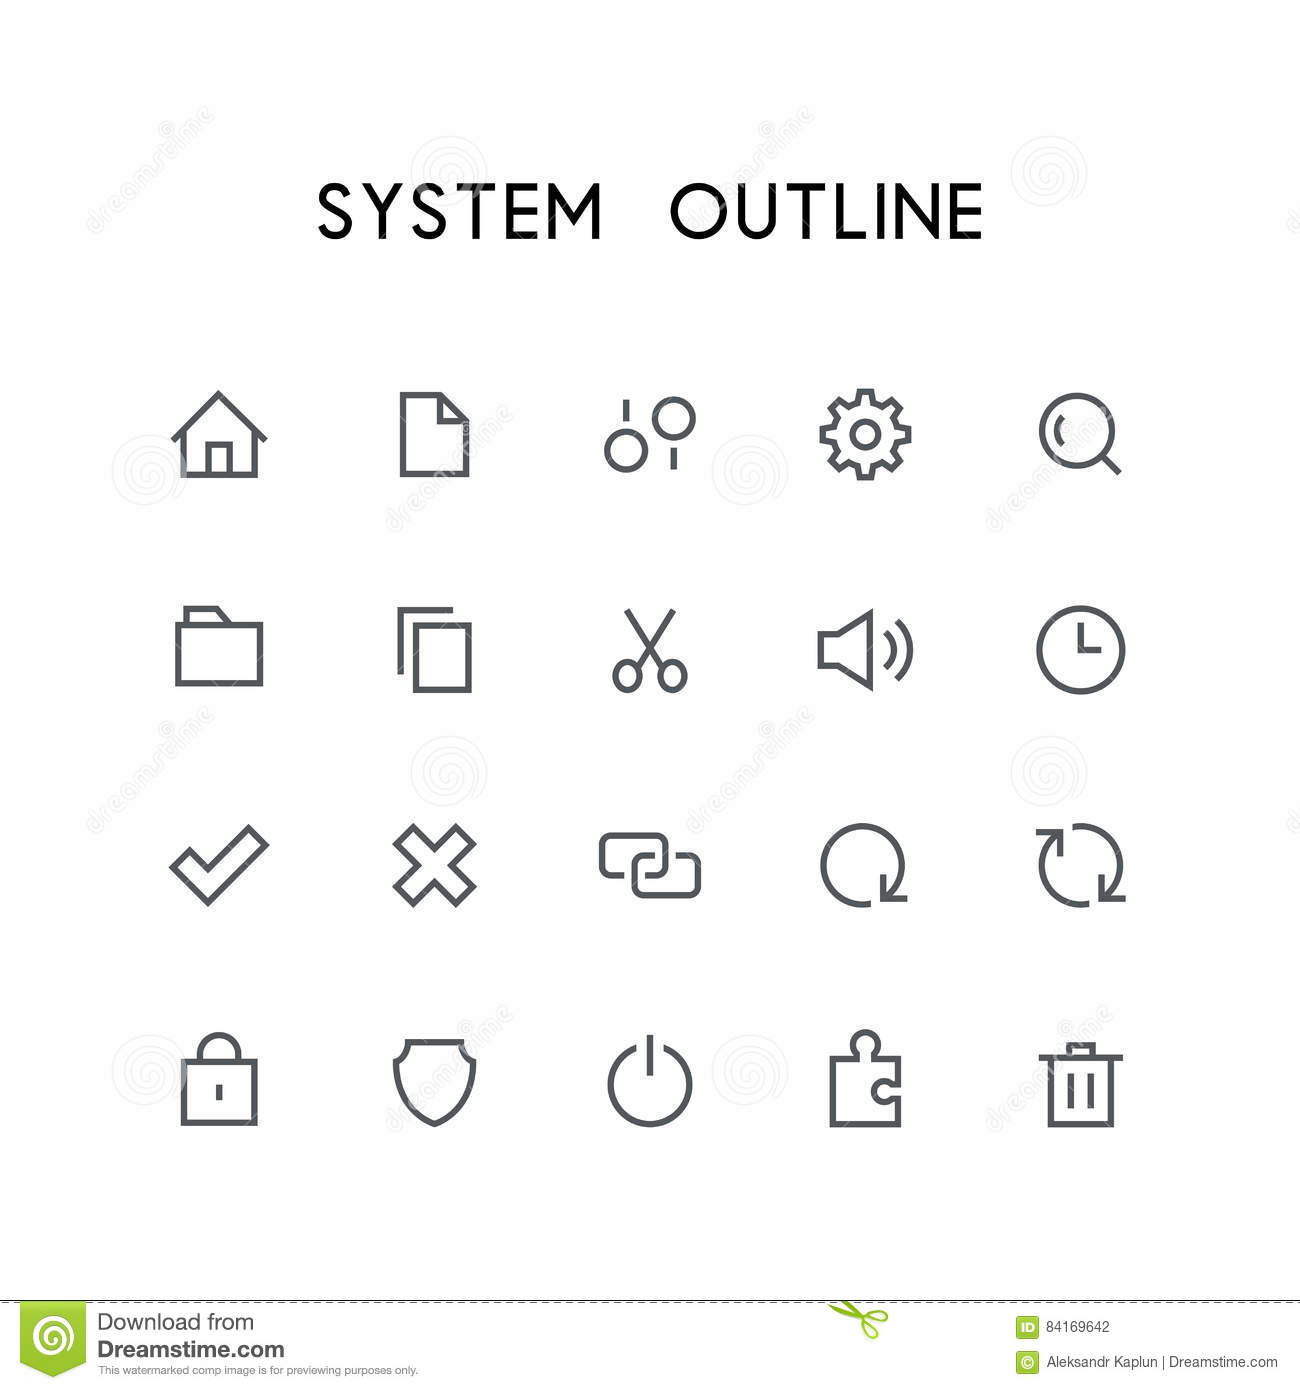 System Outline Icon Set Stock Vector Illustration Of Puzzle 84169642